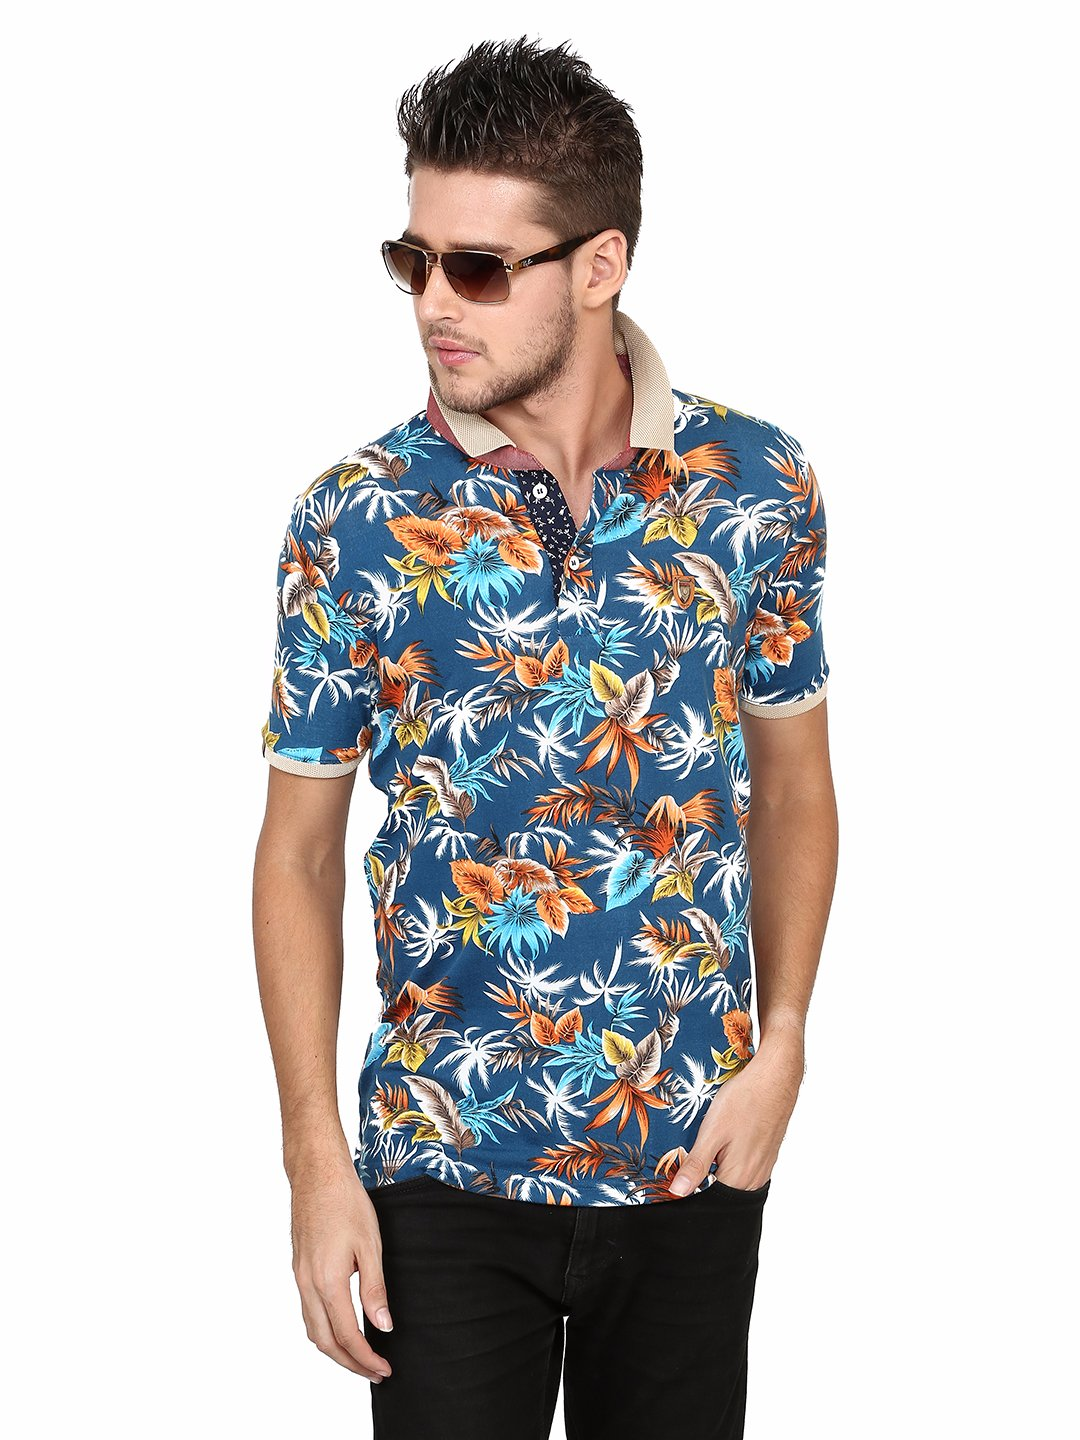 Hats Off Printed Casual Wear Blue T Shirt G3 Mts4916